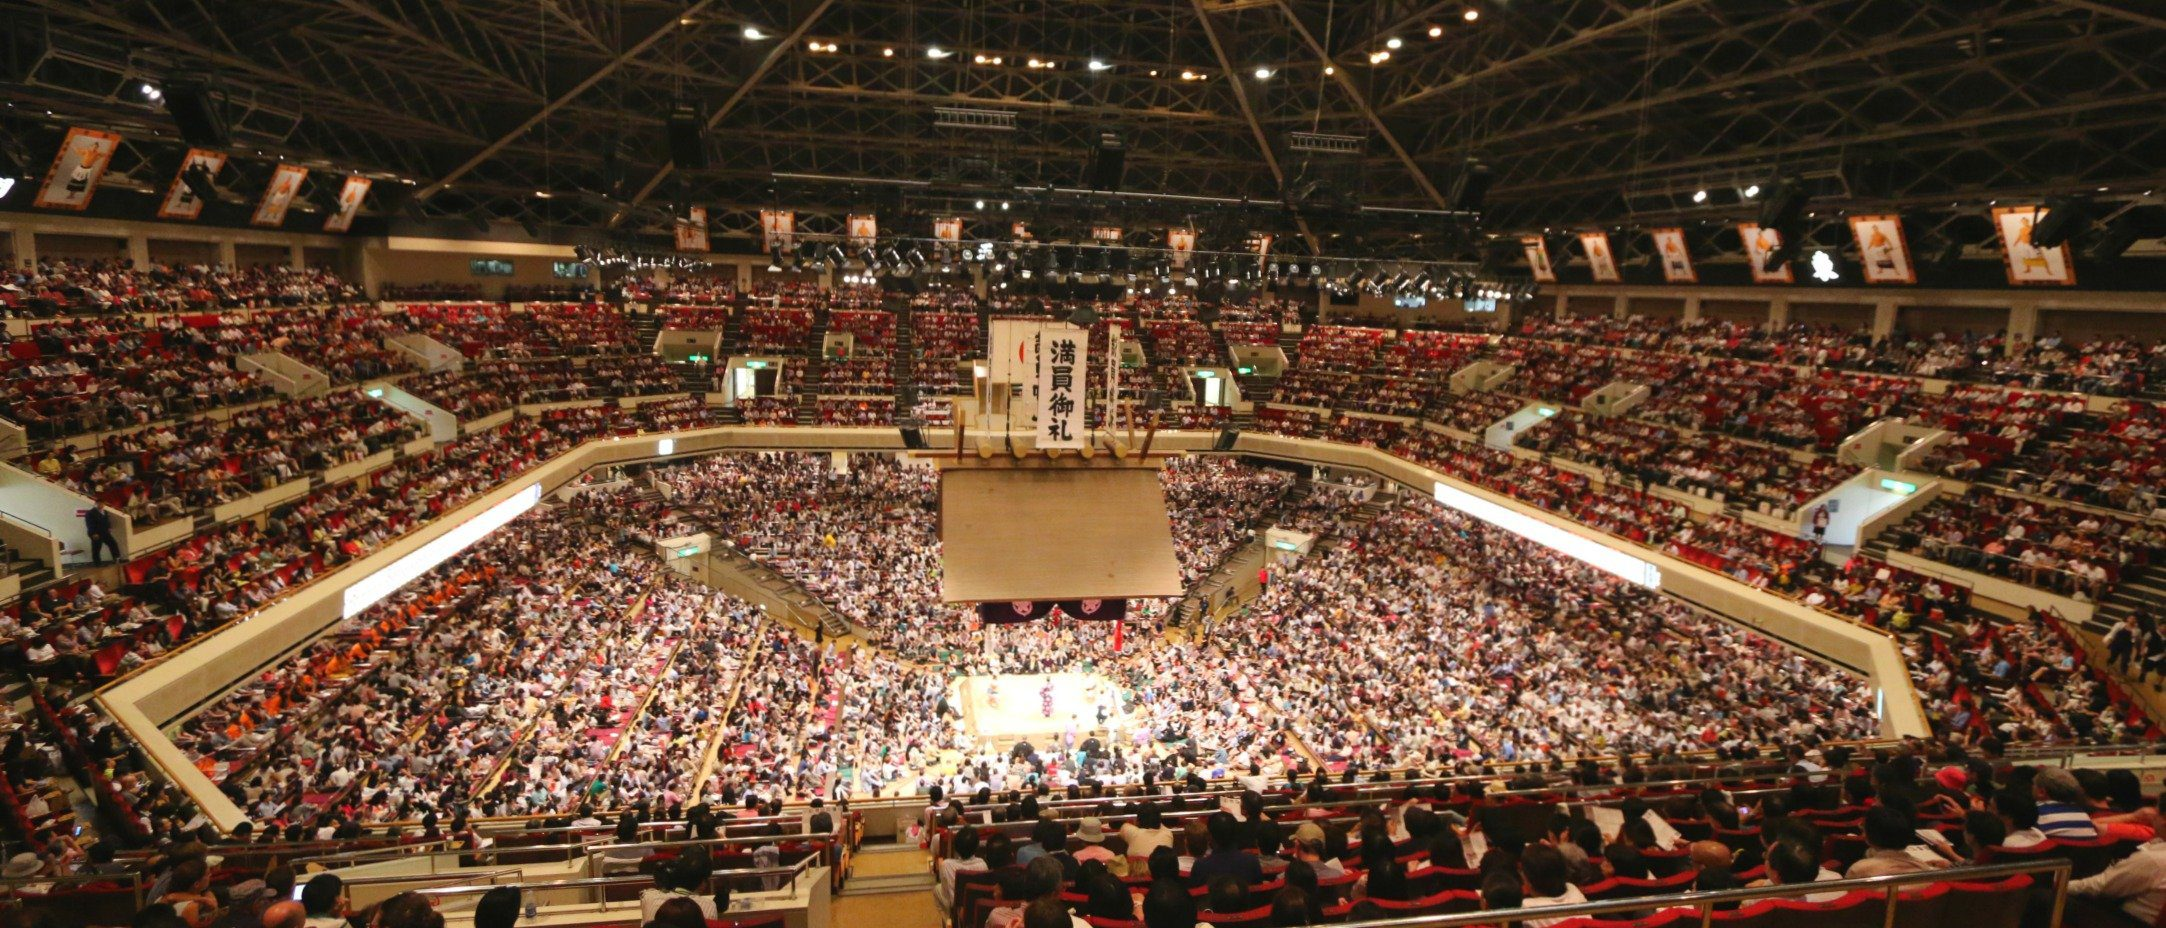 Inside the Ryogoku Kokugikan Sumo Wrestling Arena in Tokyo During the professional Level Bouts - Mostly Full!